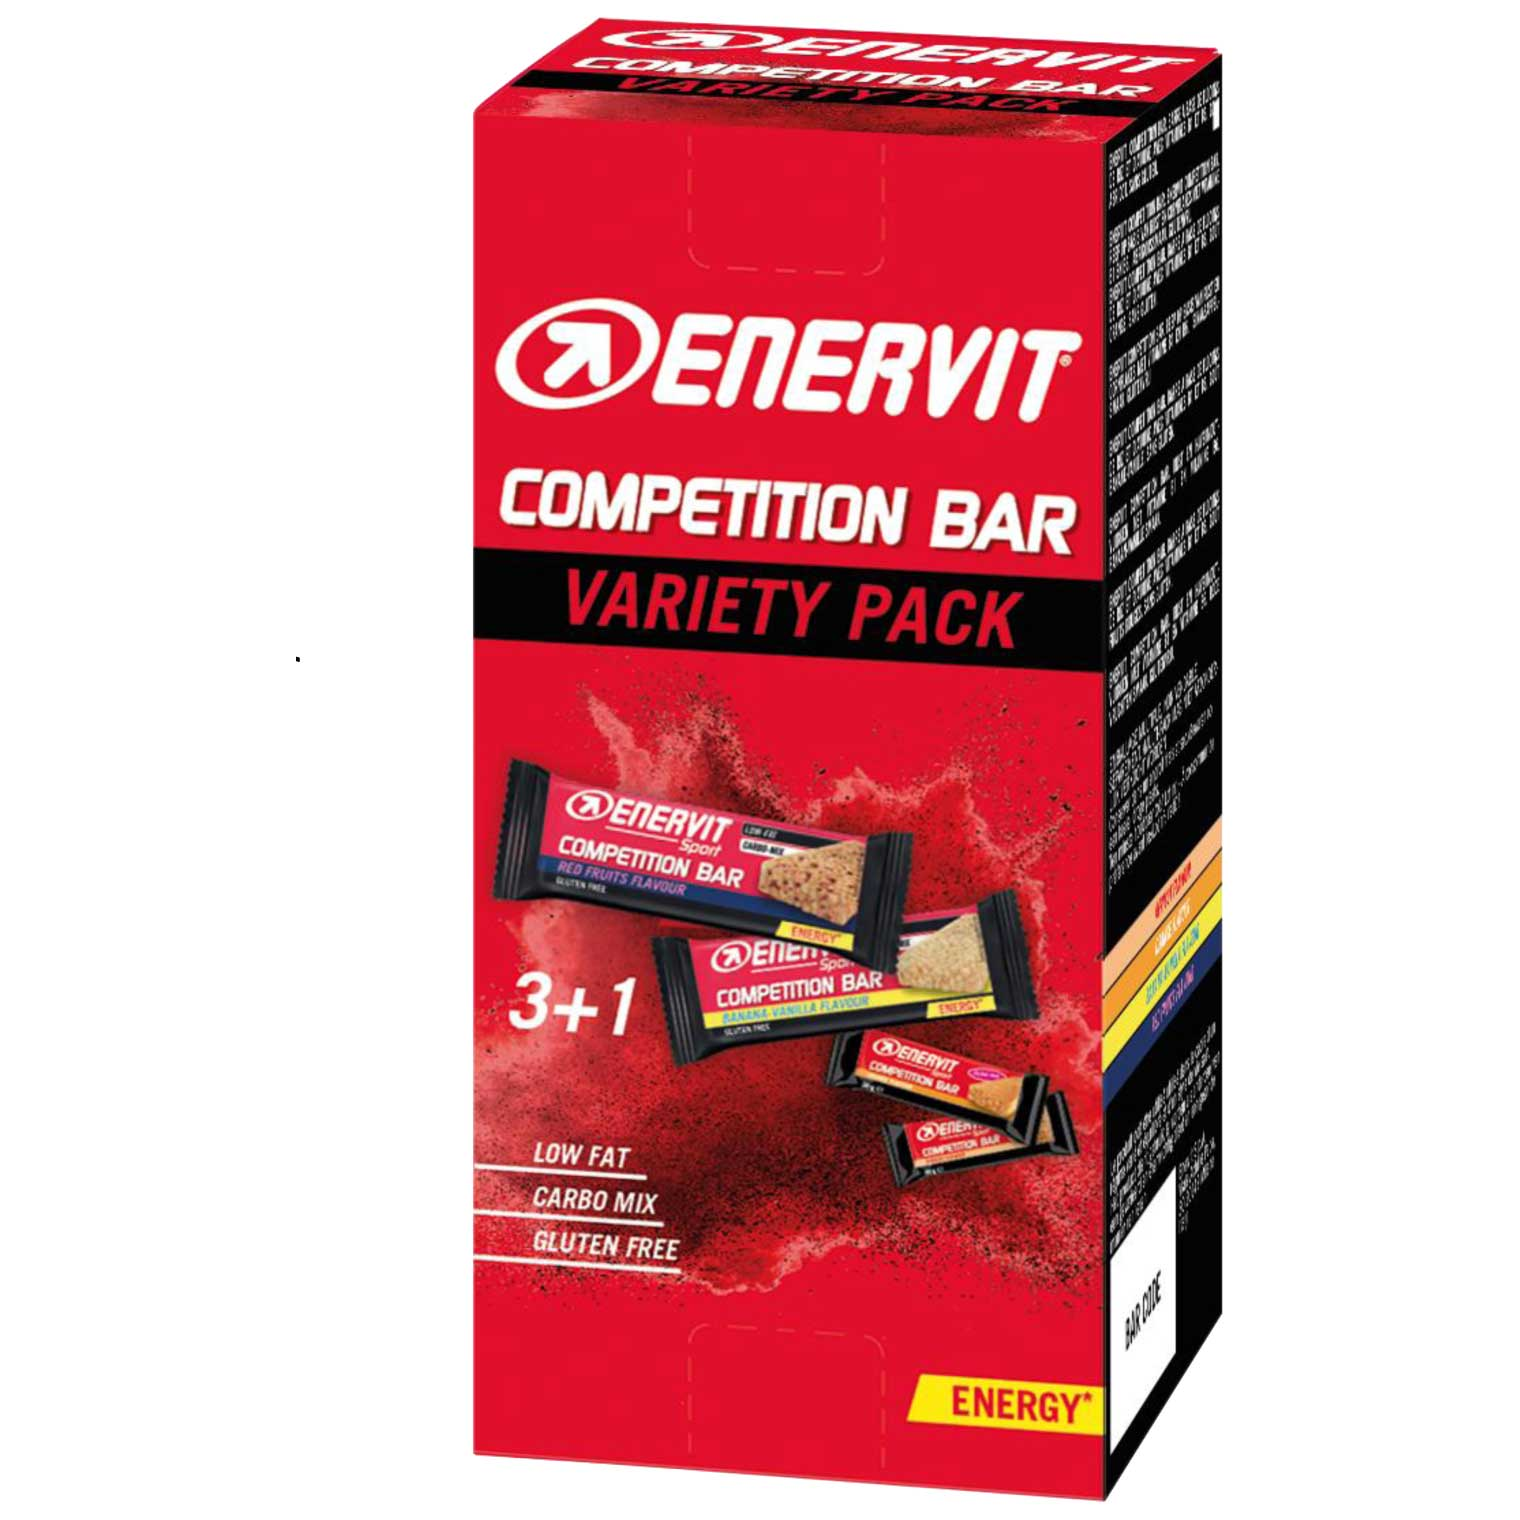 Enervit Competition Bar Variety Pack  3+1 - with Carbohydrates - 4x30g